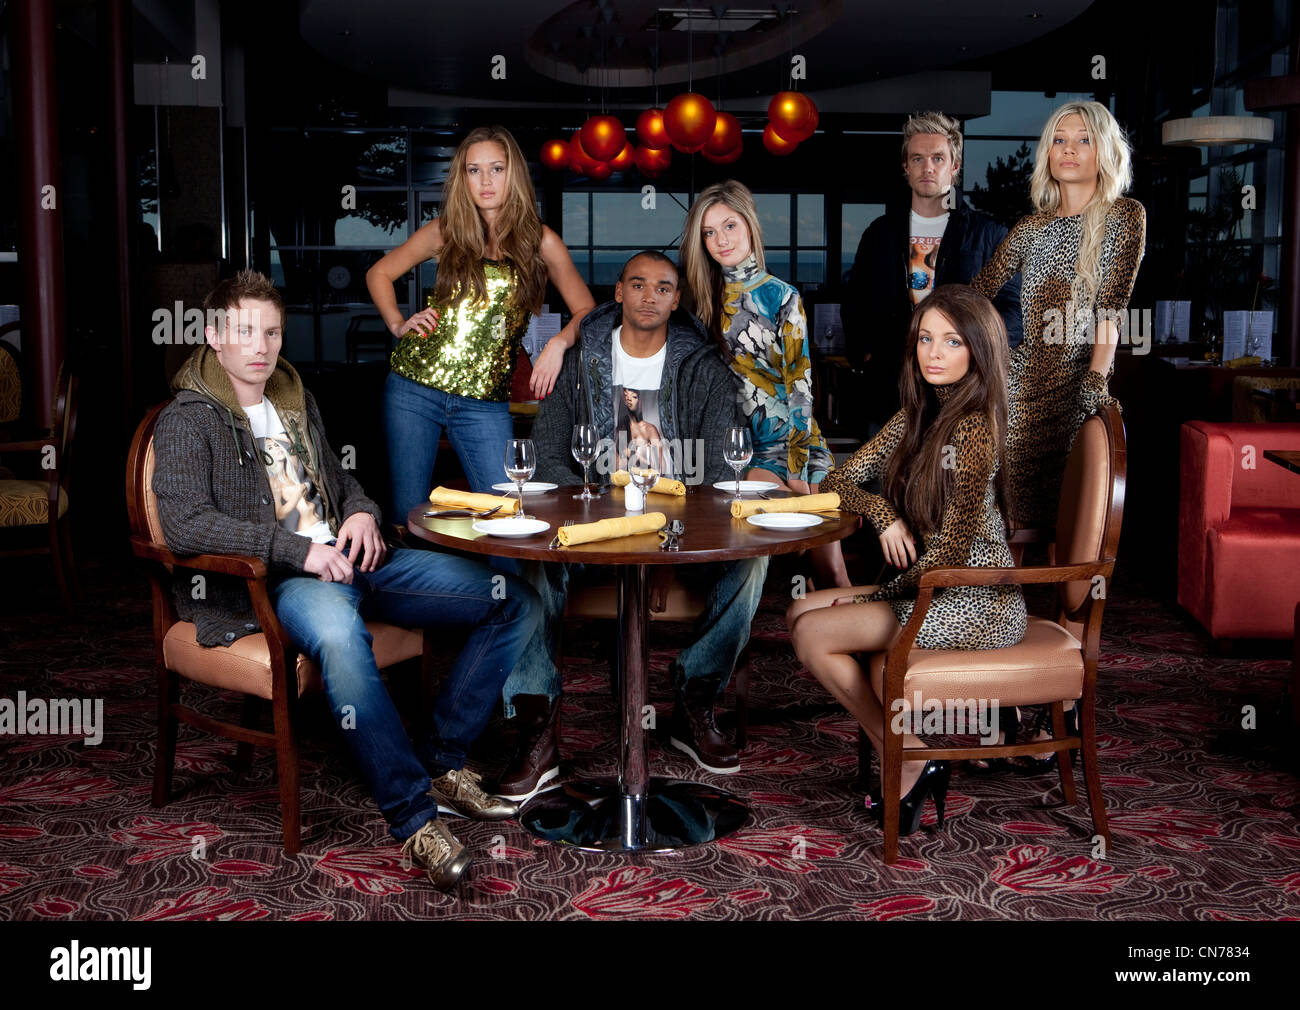 A group of young friends in their early twenties / late teens at a restaurant on a night out. - Stock Image